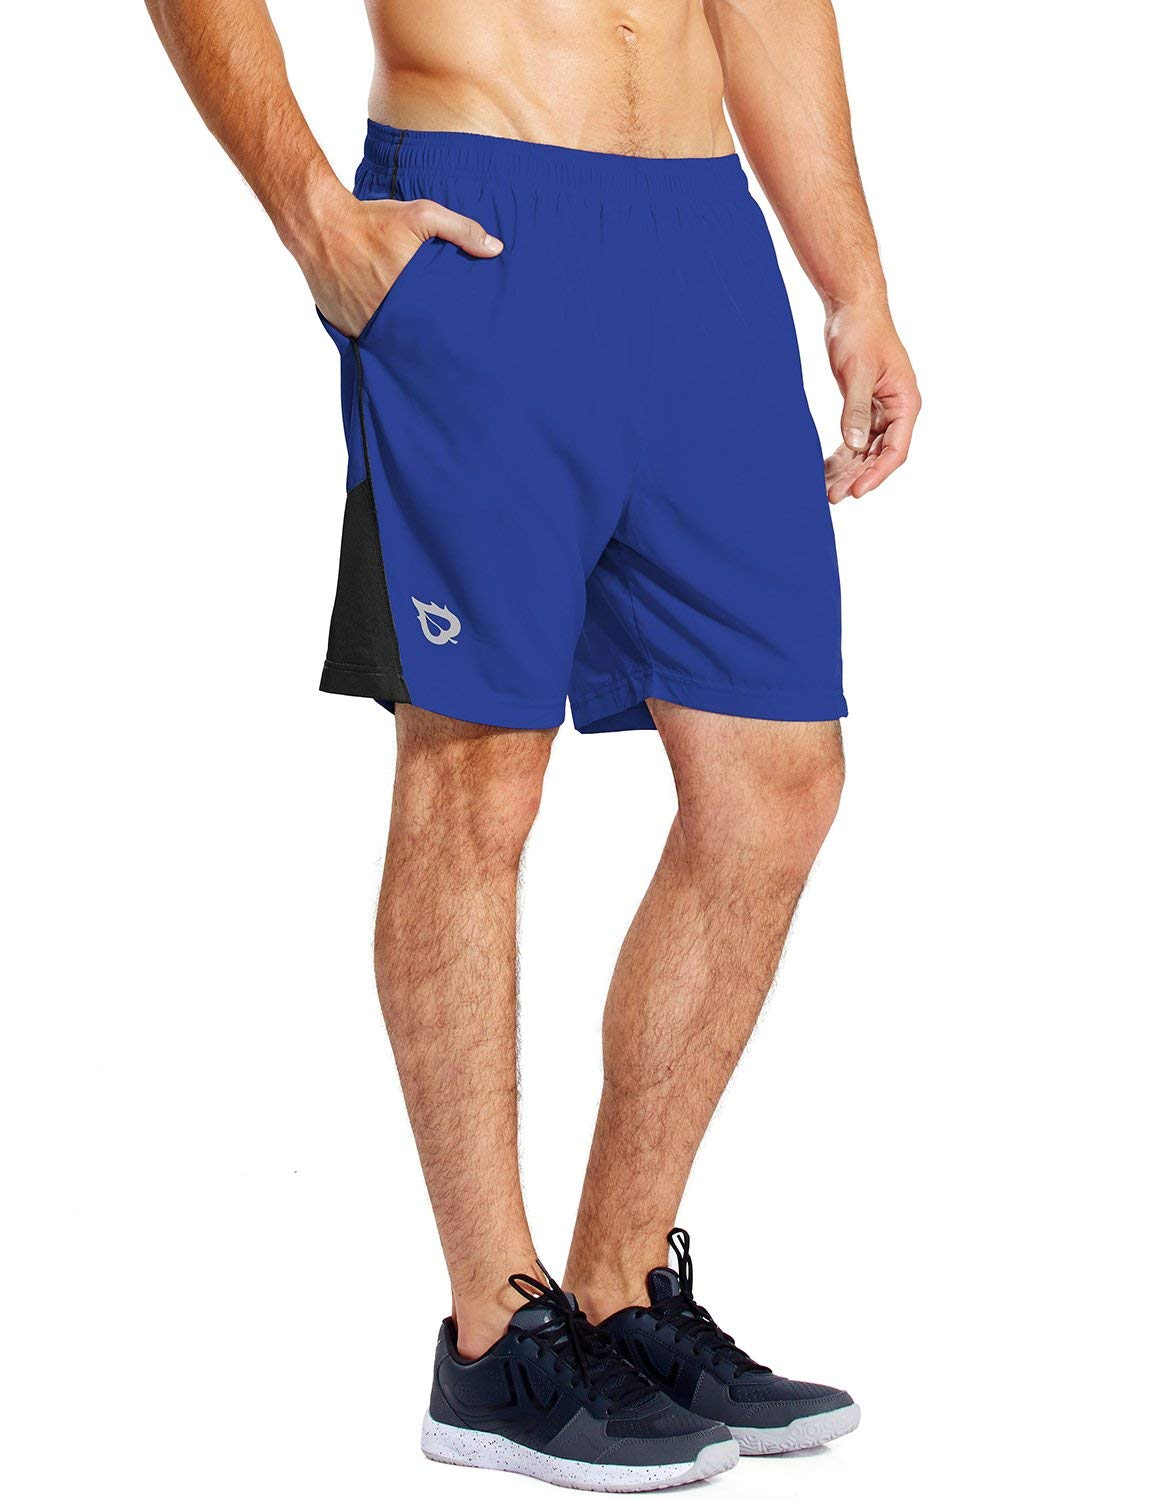 Baleaf Men's 7 Inches Quick Dry Workout Running Shorts Mesh Liner Zip Pockets Royal Blue Size XXL by Baleaf